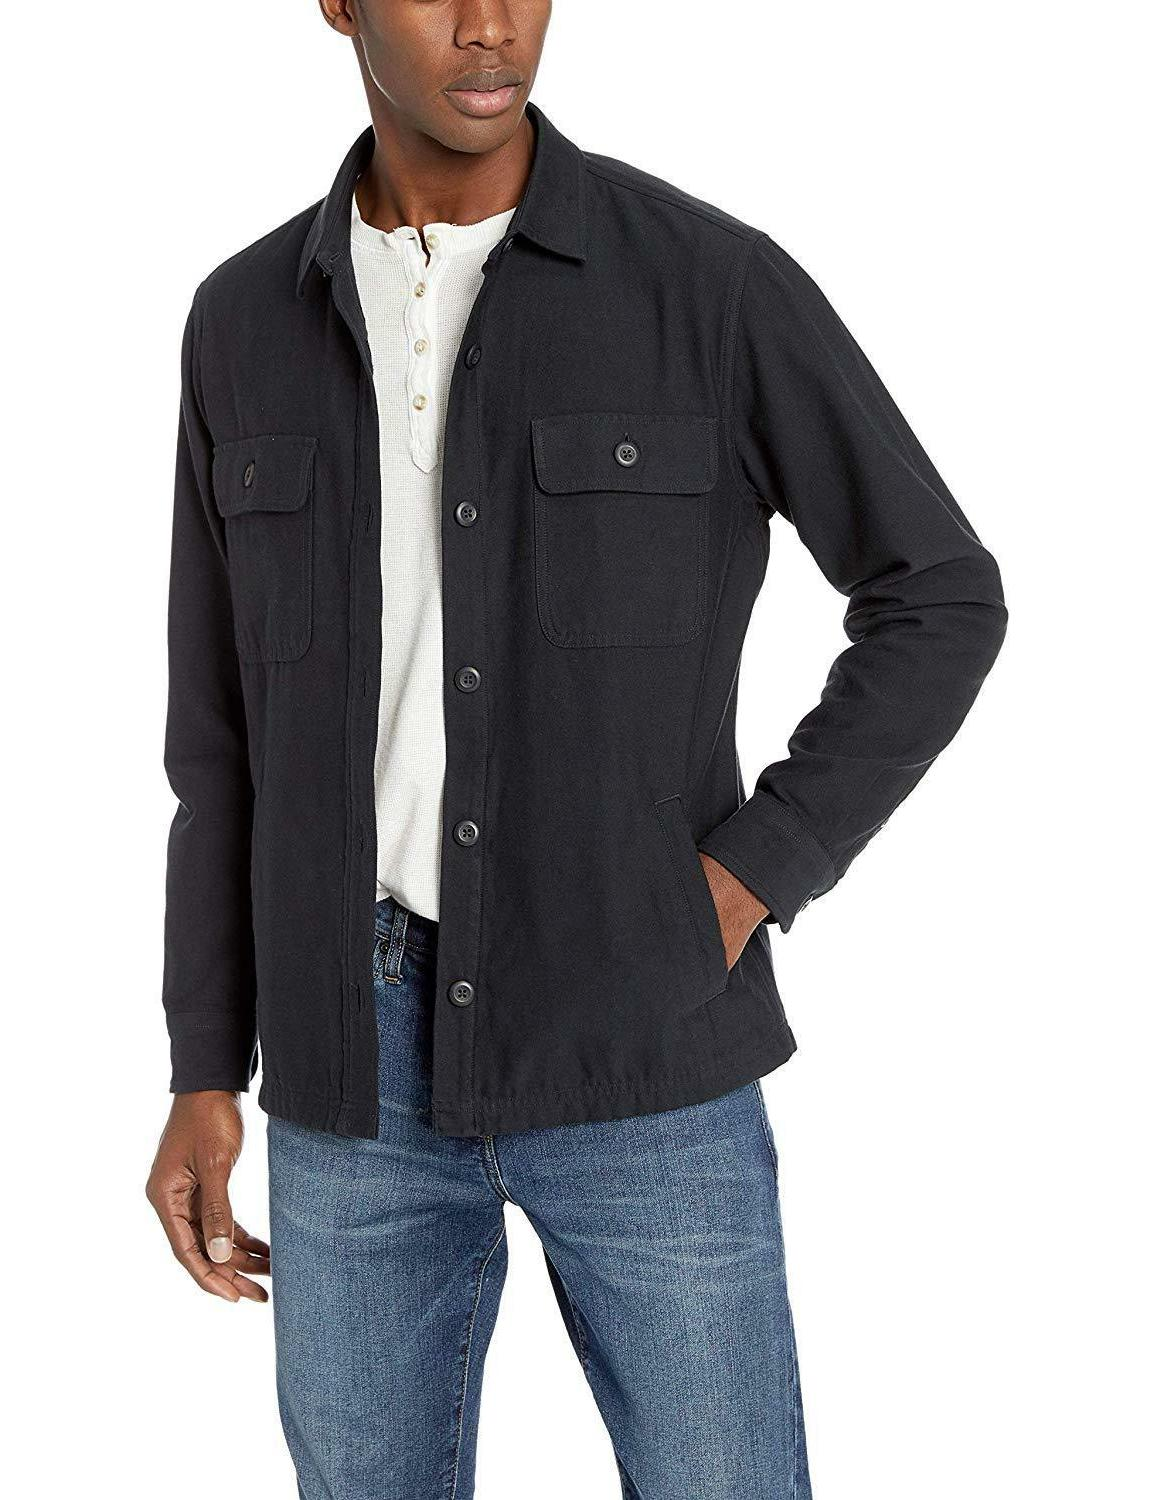 Goodthreads Men's Military Twill Shirt Jacket